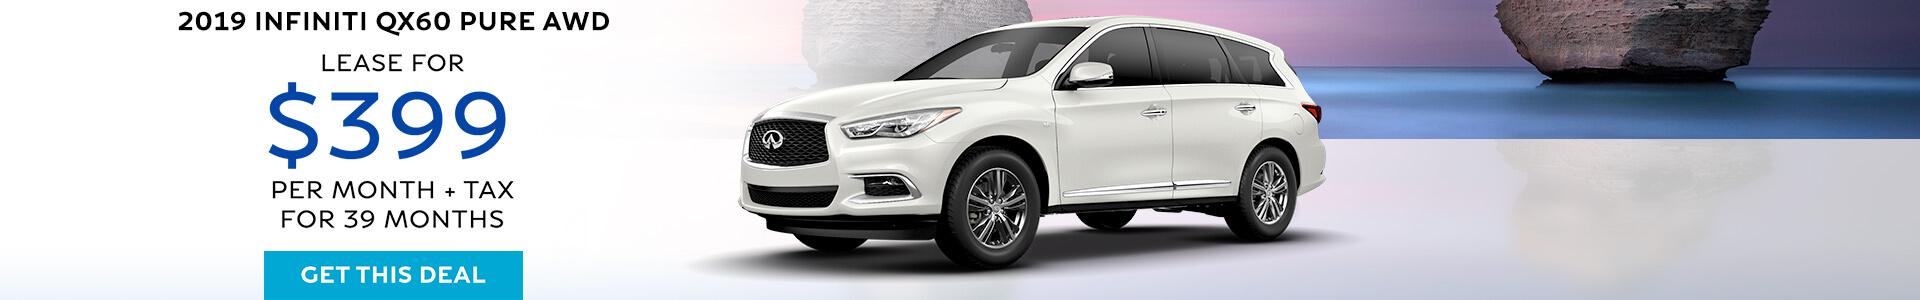 QX60 PURE - Lease for $399